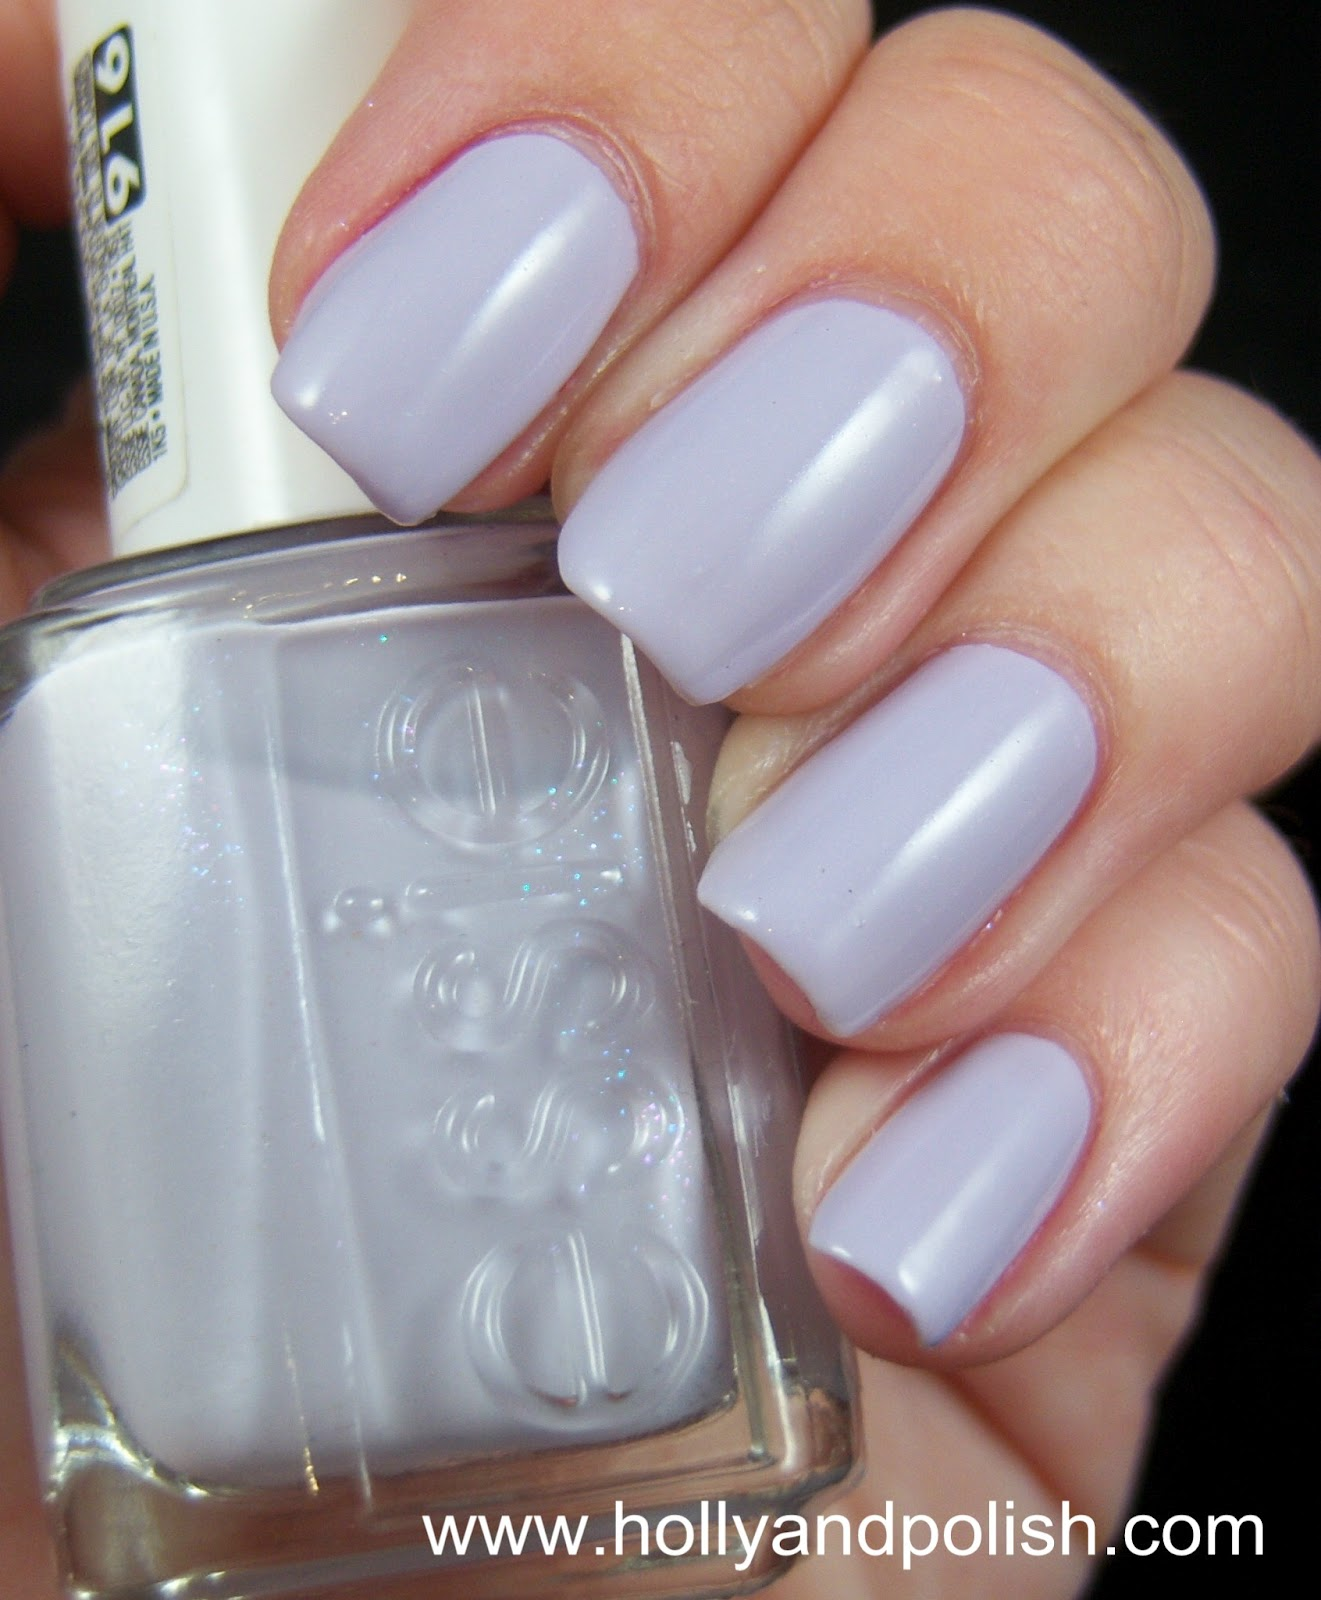 Holly and Polish: A Nail Polish and Beauty Blog: Essie To Buy Or Not ...